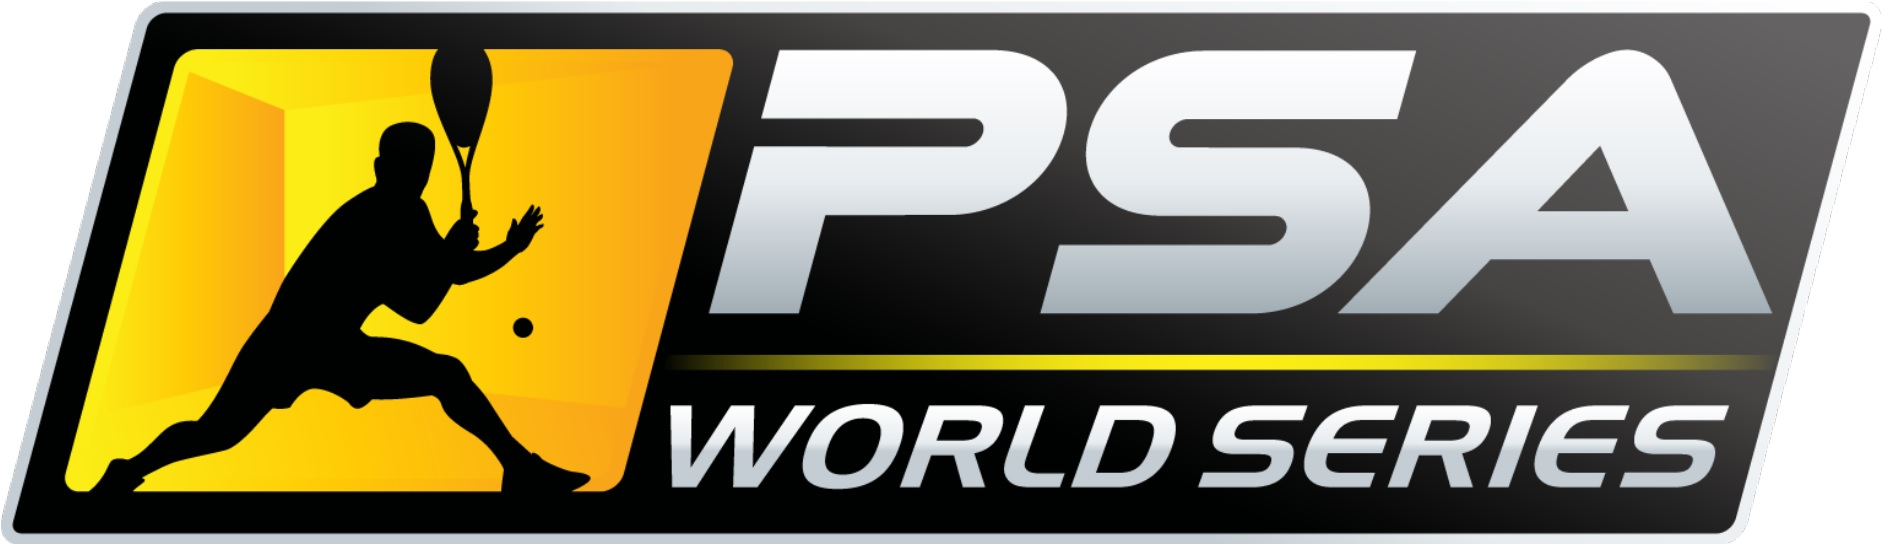 PSA World Series logo.jpg